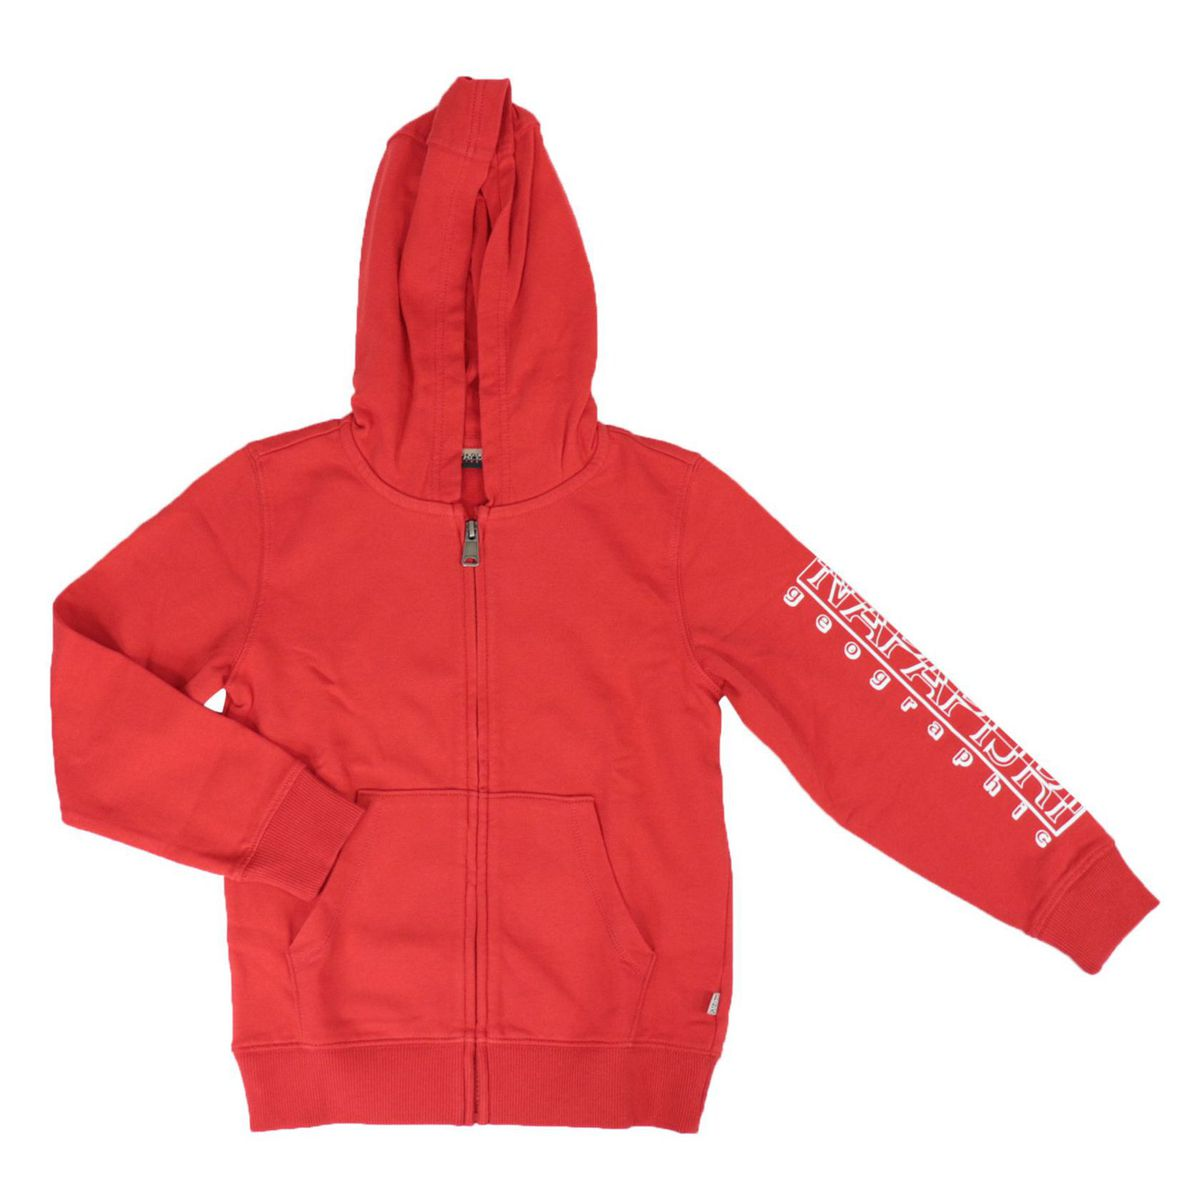 Full zip cotton sweatshirt with hood with logo print on the sleeve Red NAPAPIJRI